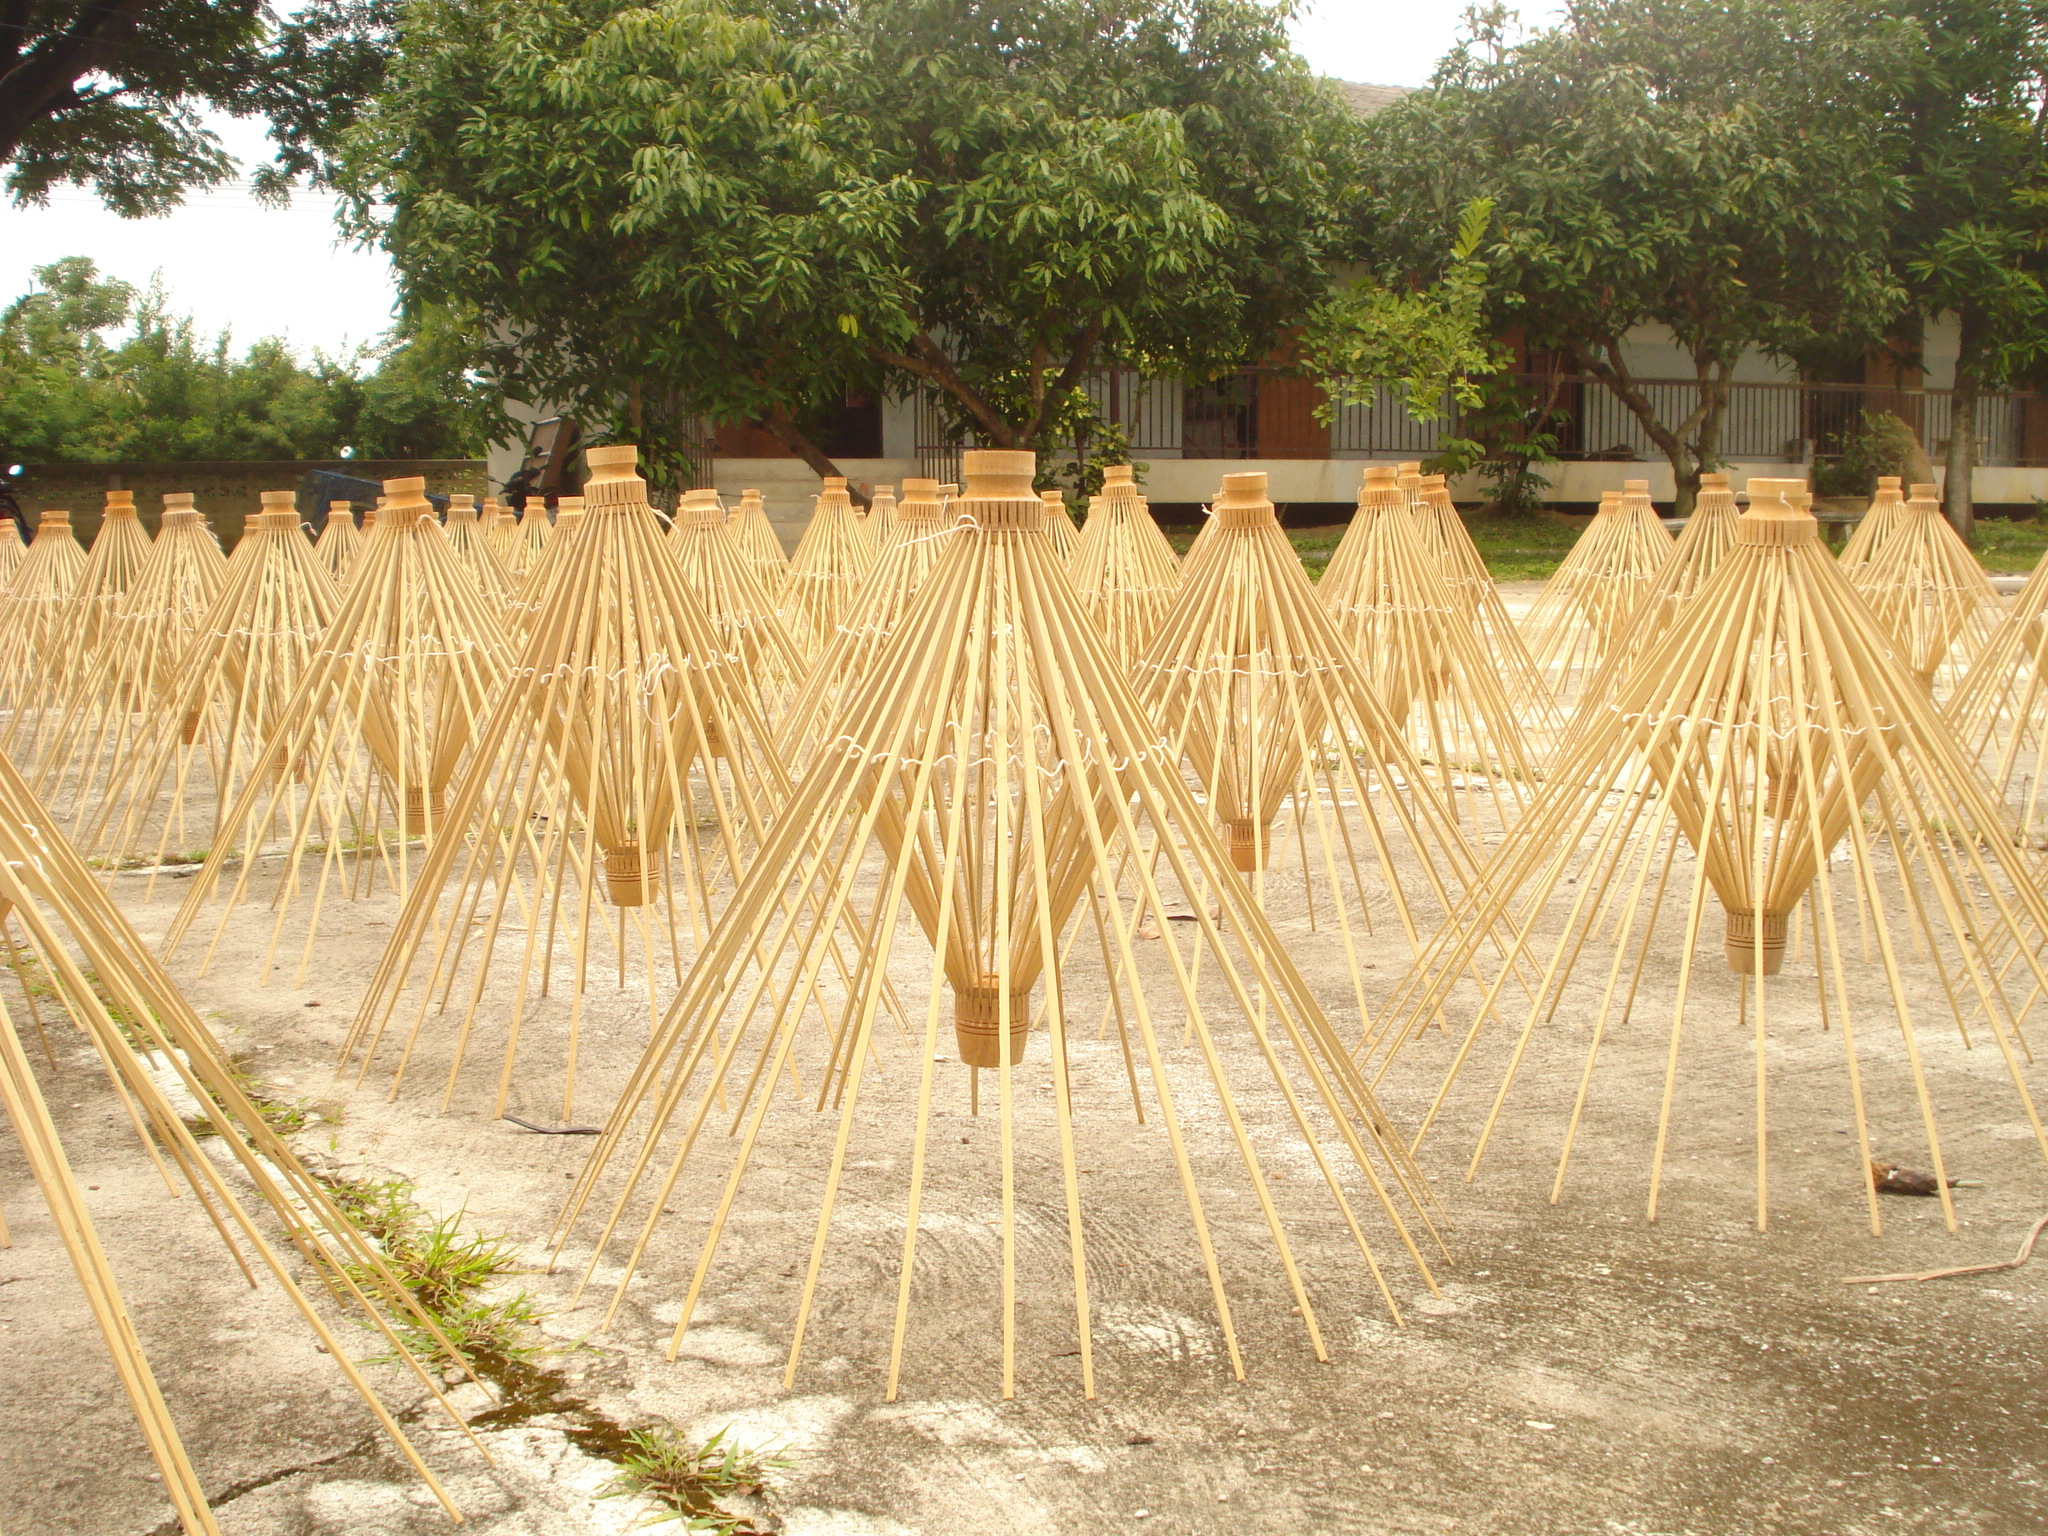 A whole batch of BRELLIs drying in the sun in Chiang Mai, Thailand.